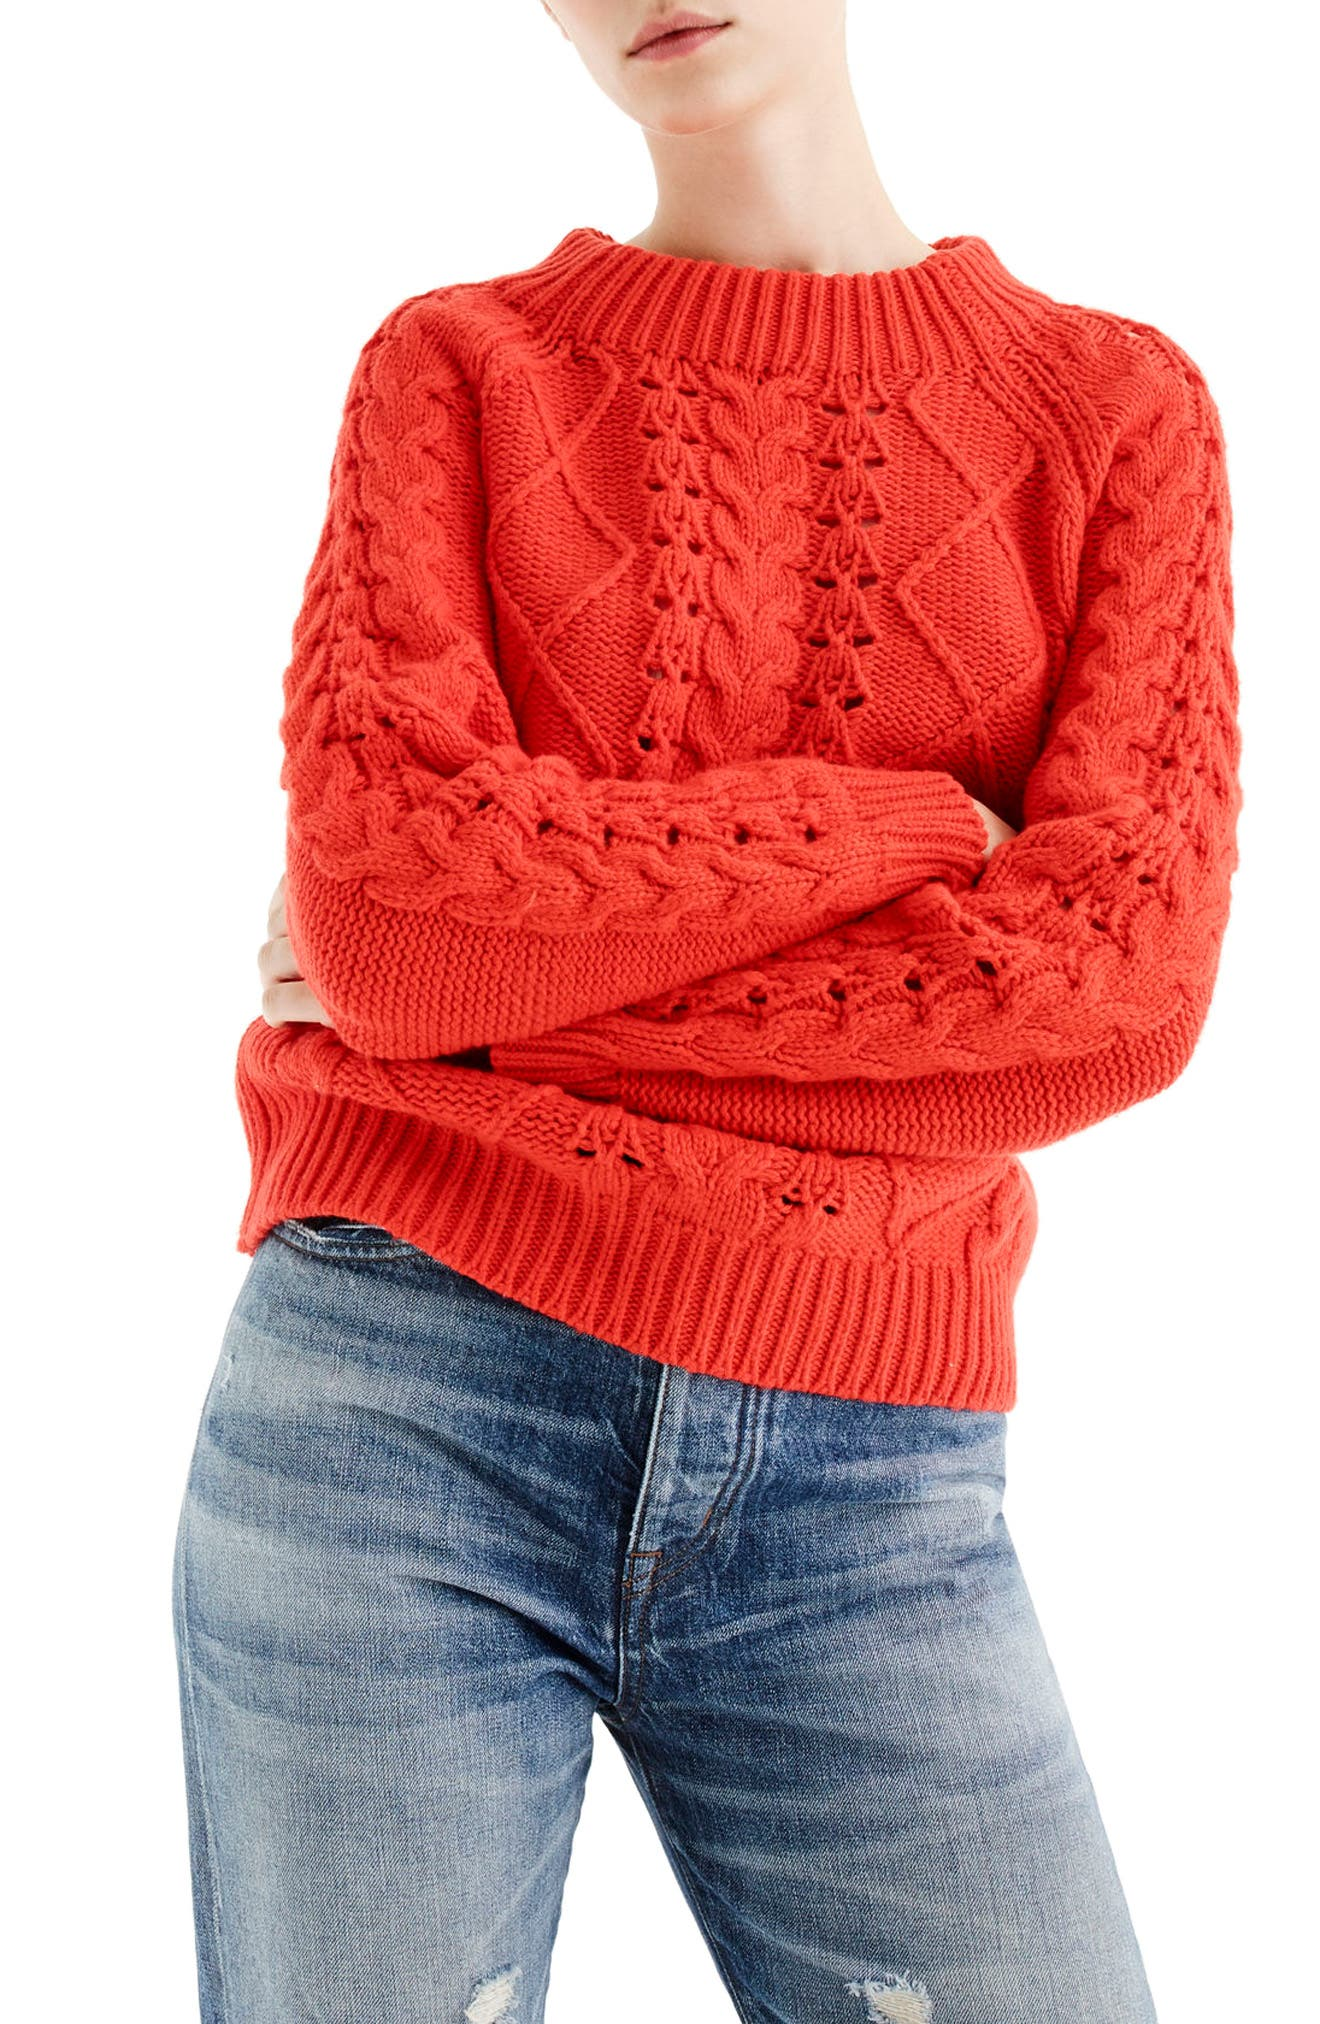 Main Image - J.Crew Cable Knit Mock Neck Sweater